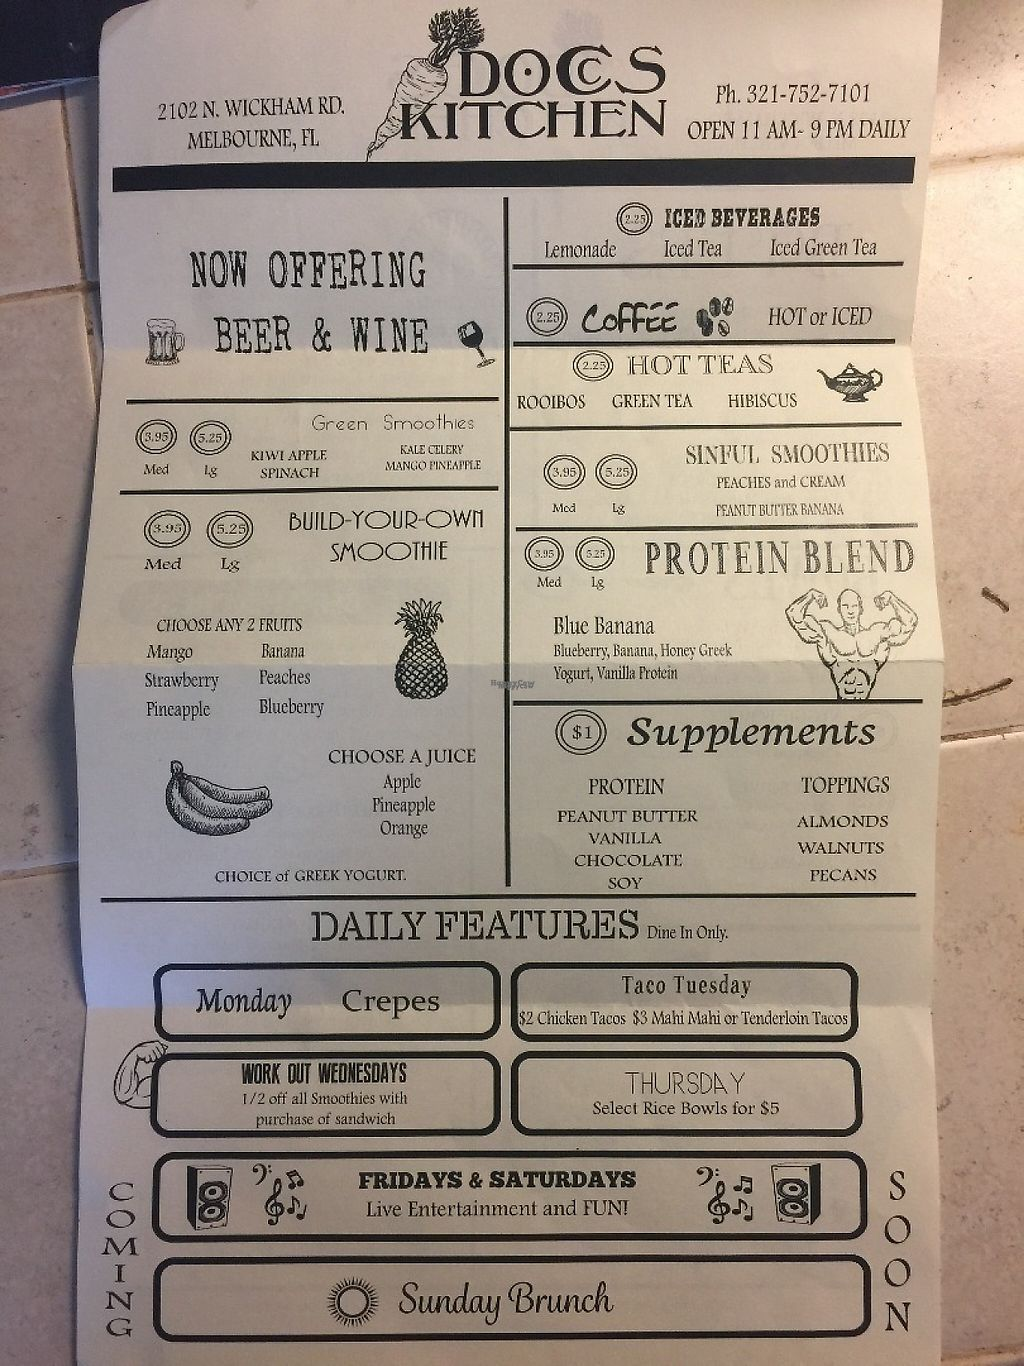 """Photo of DOCCS Kitchen  by <a href=""""/members/profile/KoralSeiberlich"""">KoralSeiberlich</a> <br/>Back menu <br/> November 14, 2016  - <a href='/contact/abuse/image/79577/190128'>Report</a>"""